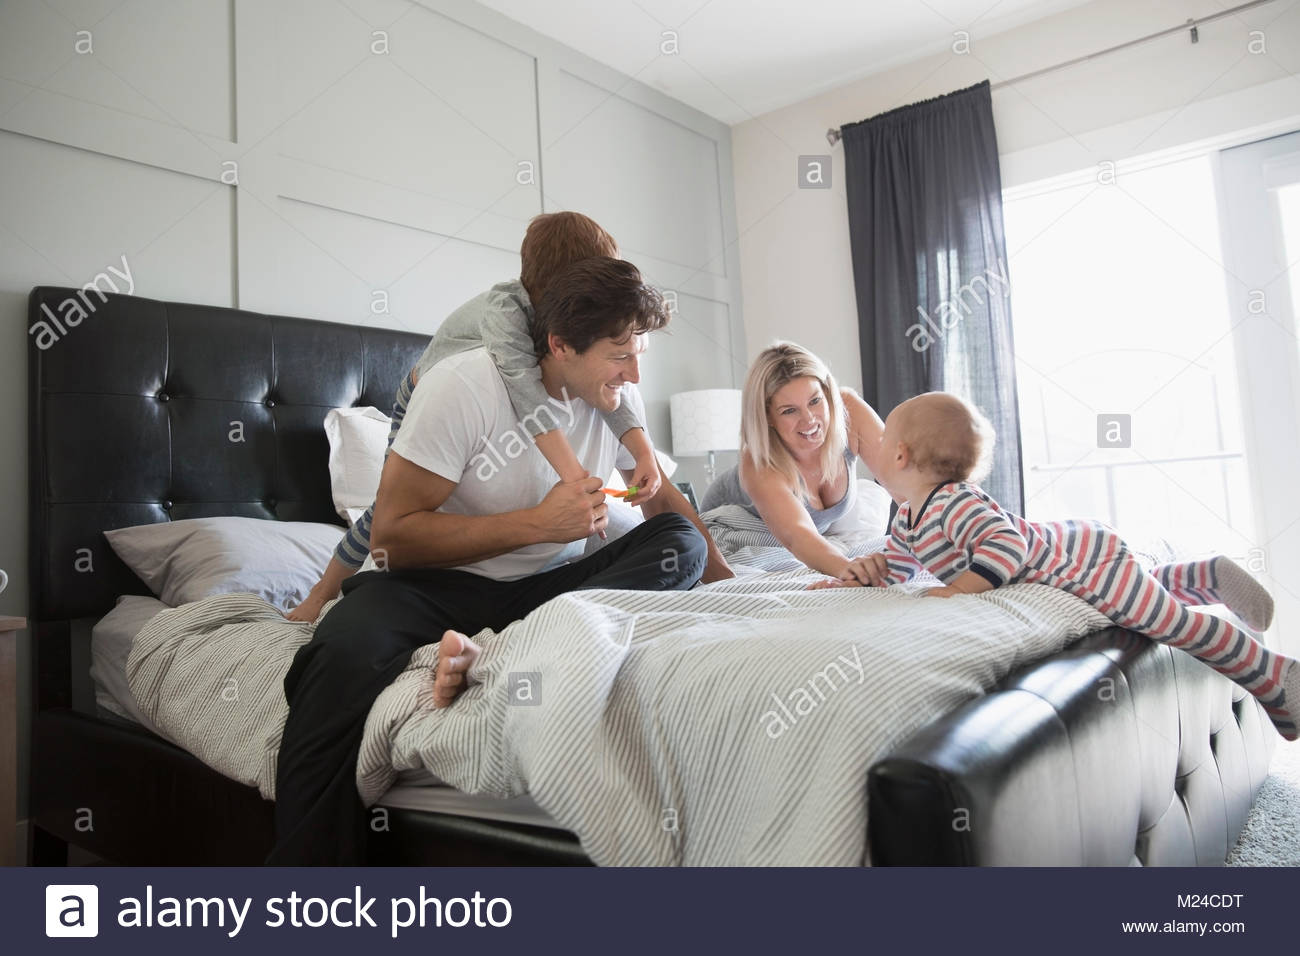 Playful family on bed Stock Photo